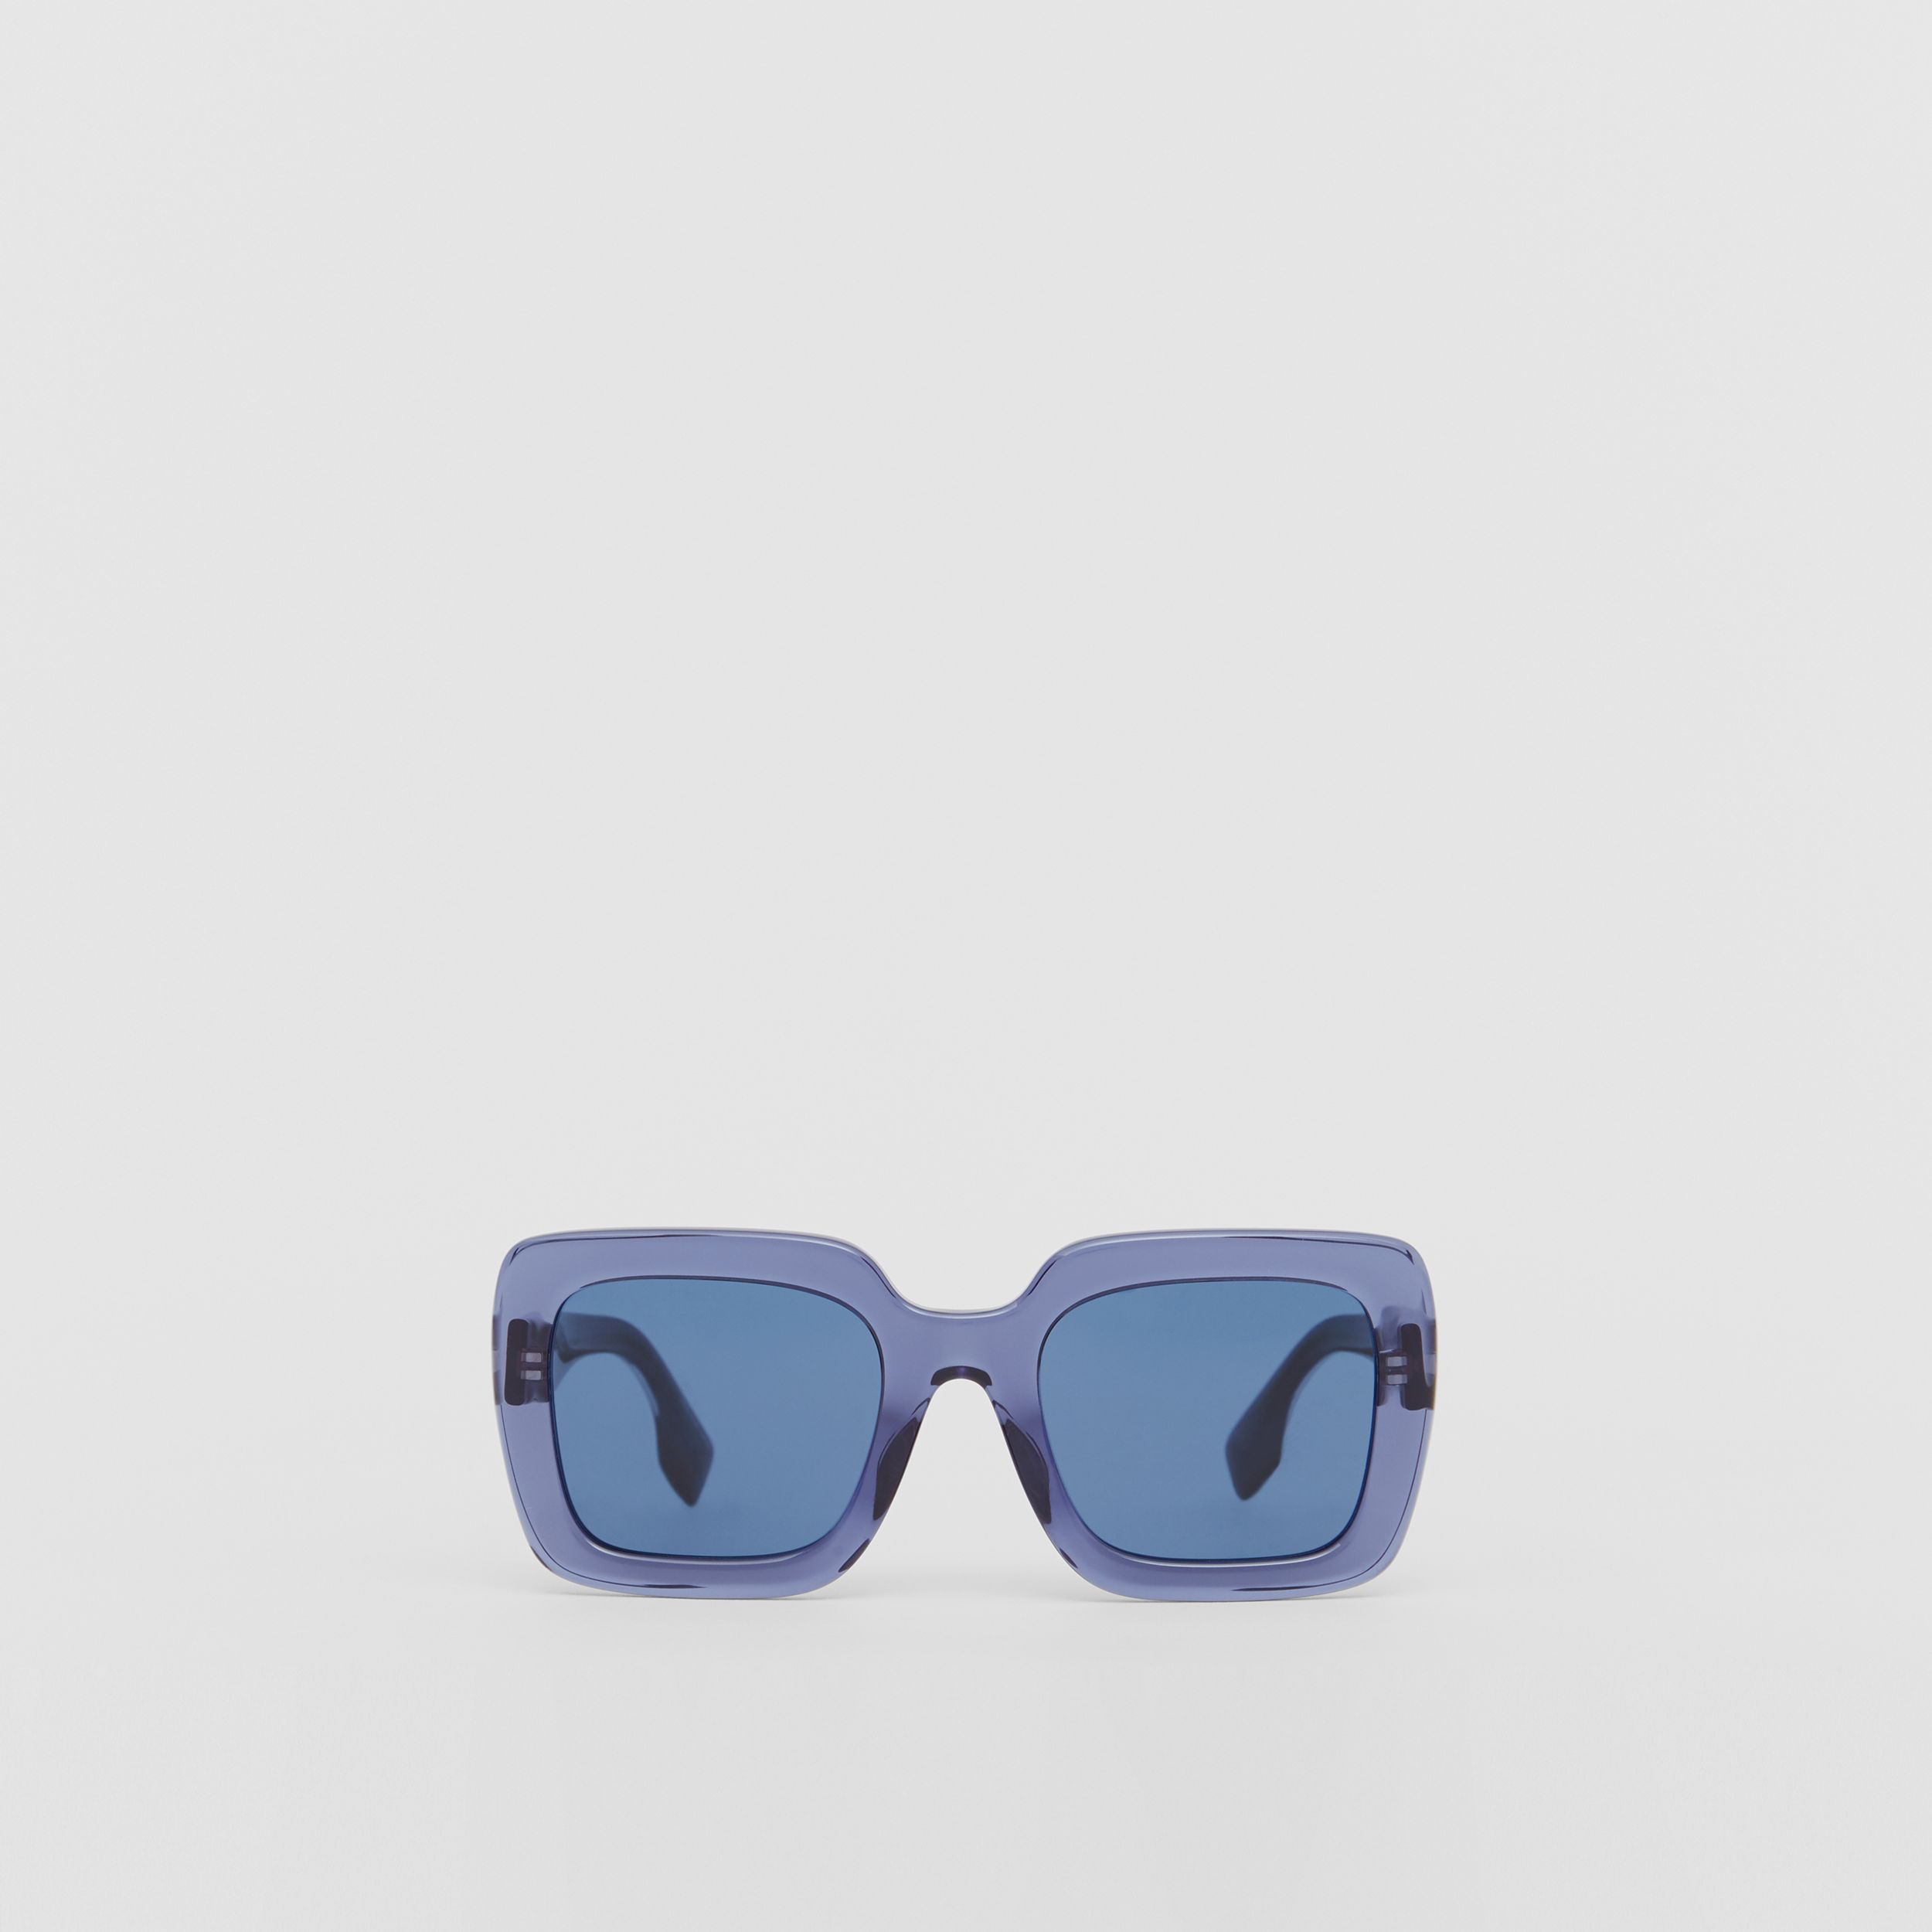 Oversized Square Frame Sunglasses in Blue - Women | Burberry - 1